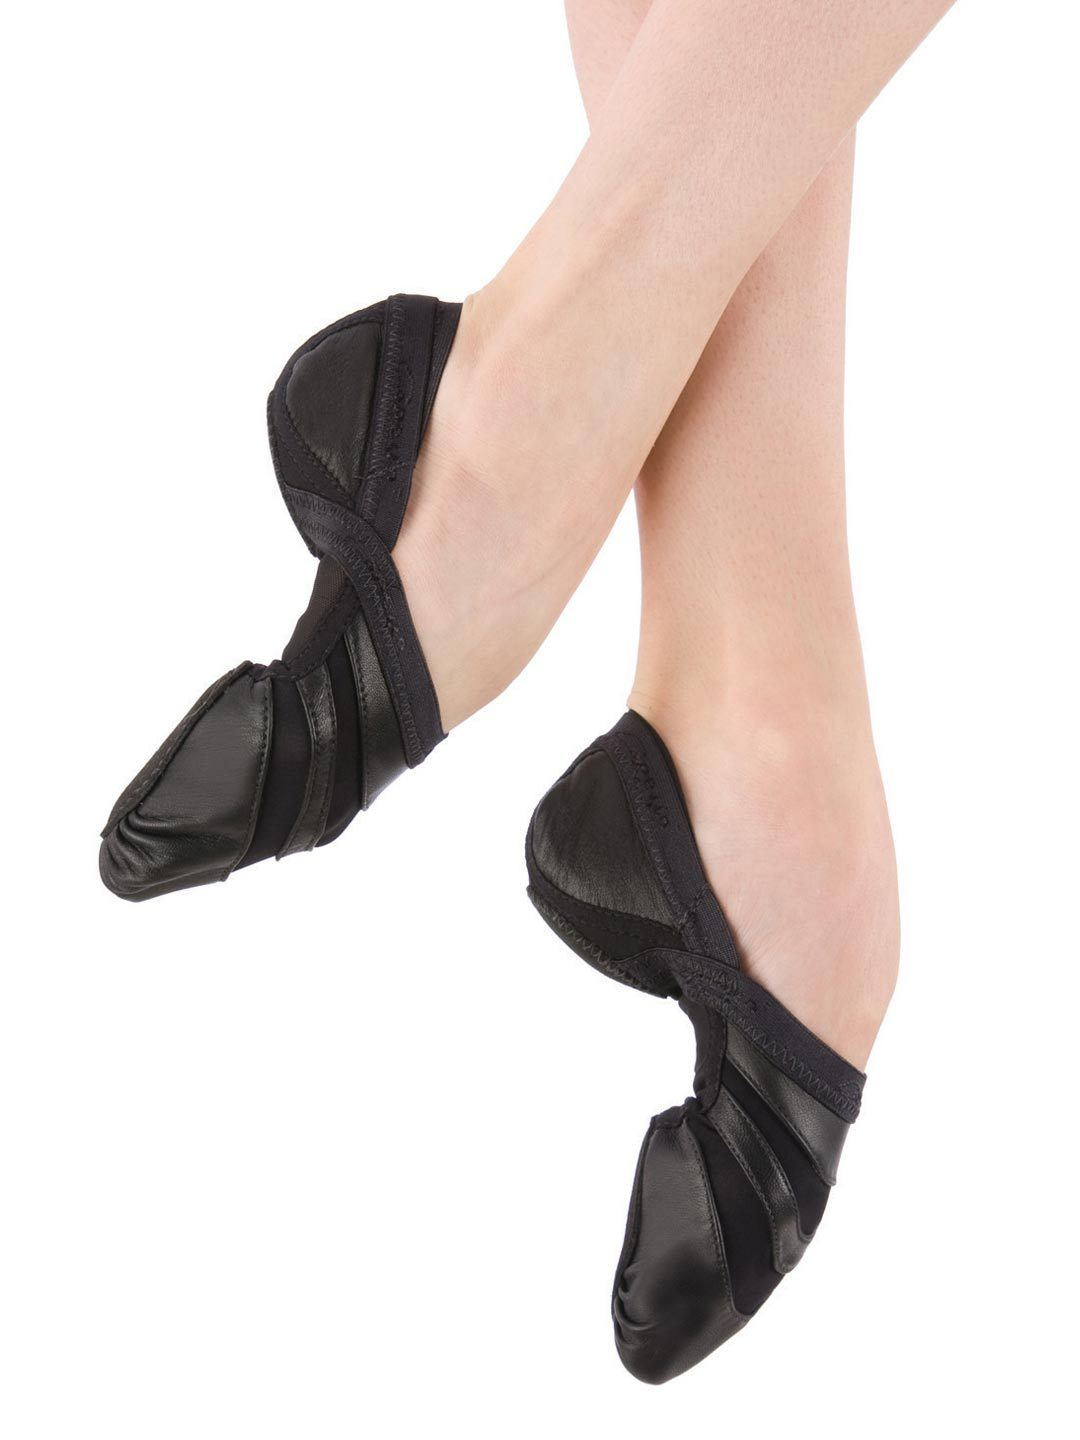 Lyrical Dance Shoes | Pirouette Shoes